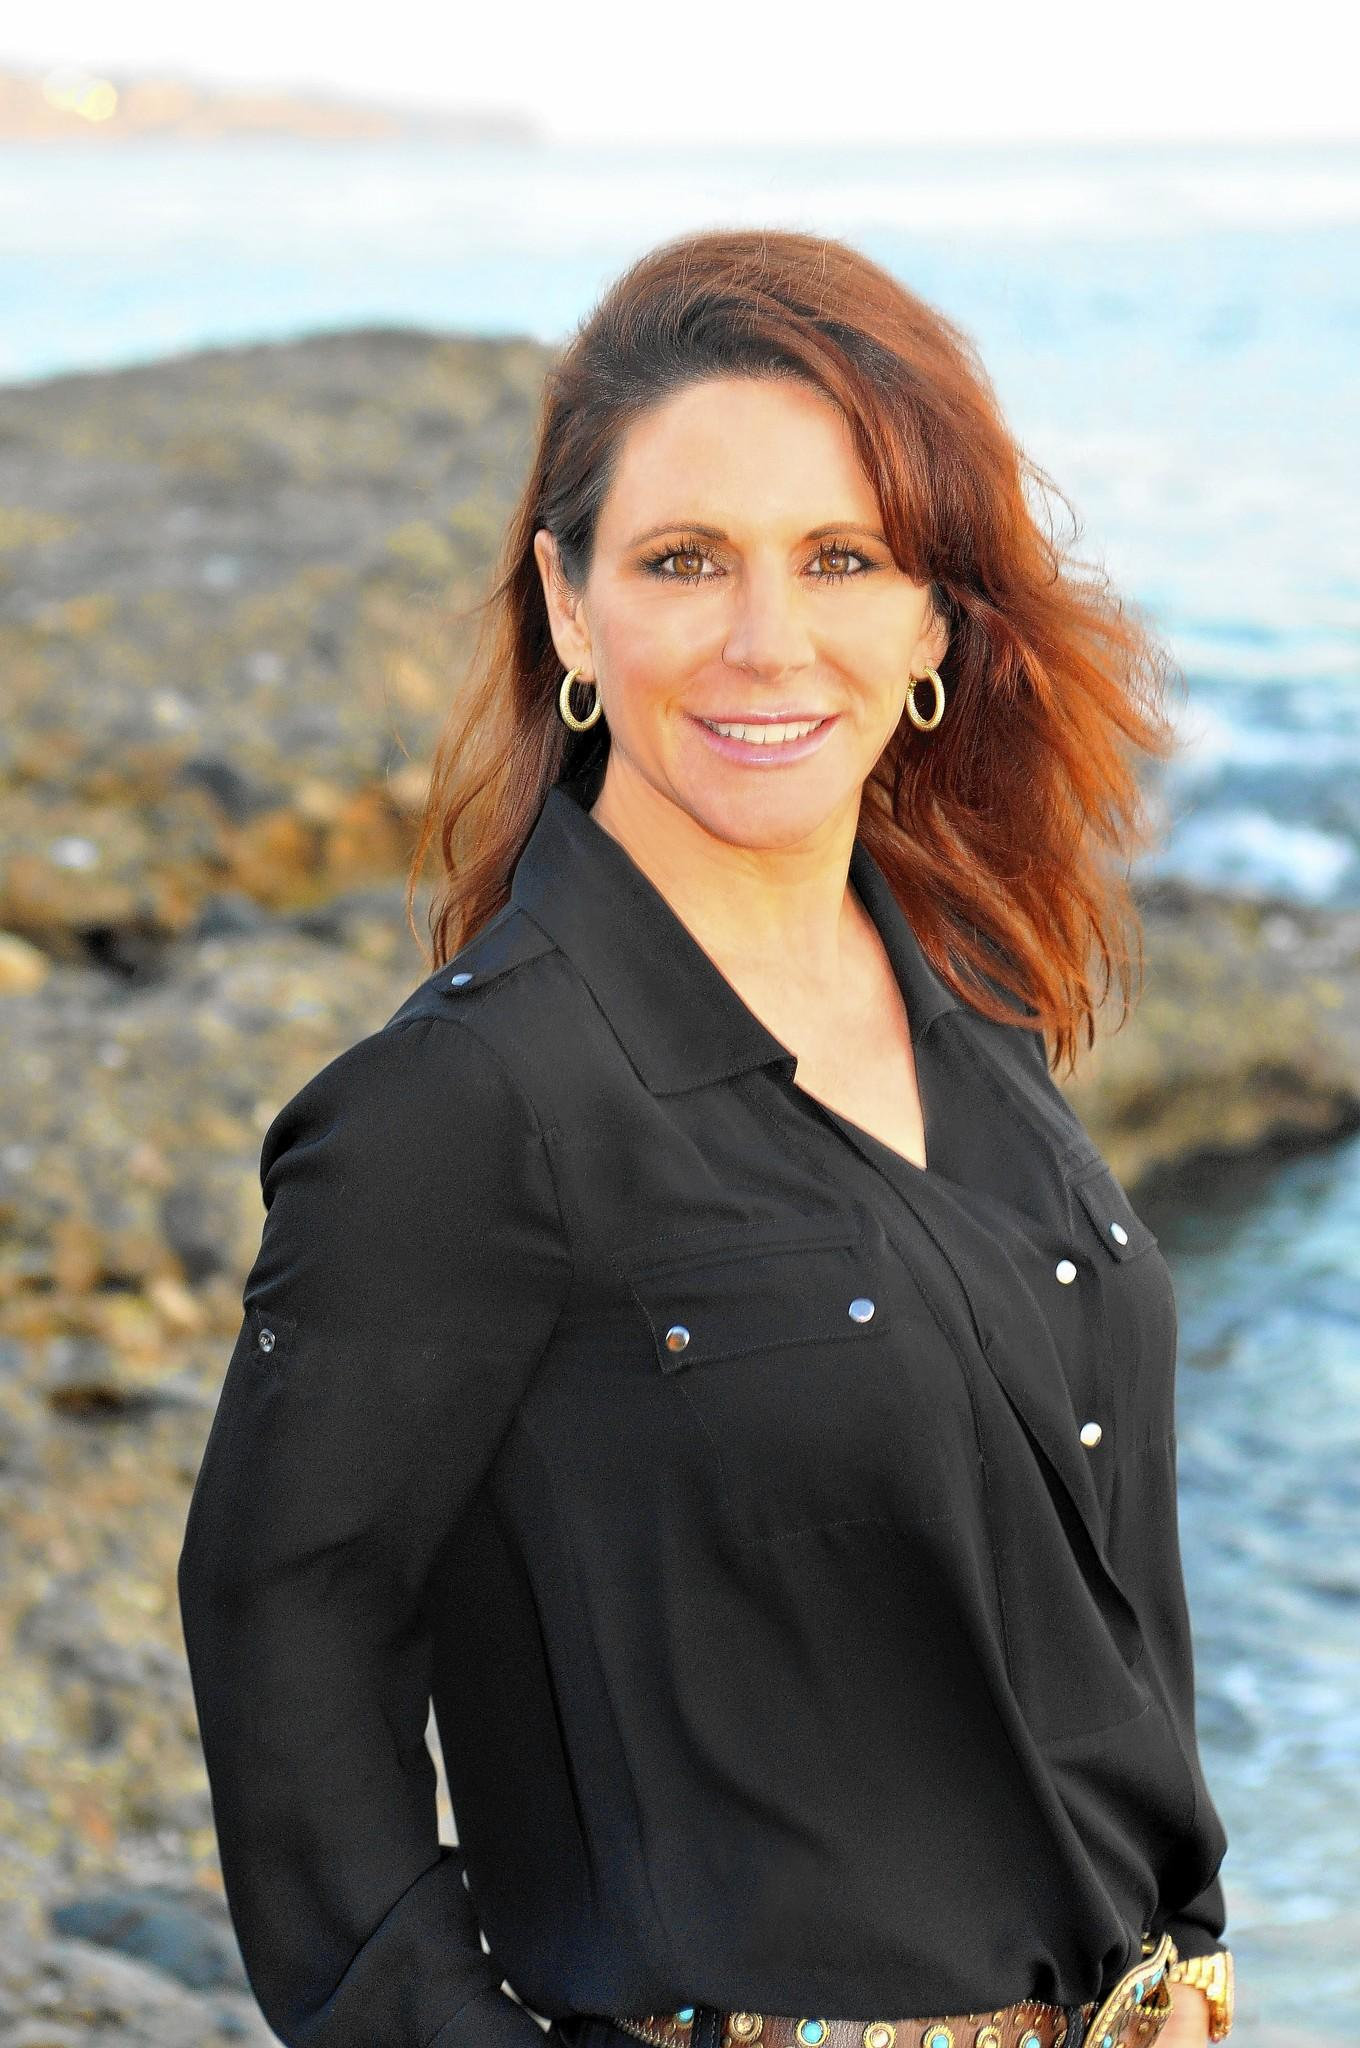 Michele Hall, who has lived in Laguna Beach almost her whole life, will run for City Council this fall. She was a campaign consultant and former president of the Laguna Beach Republicans.